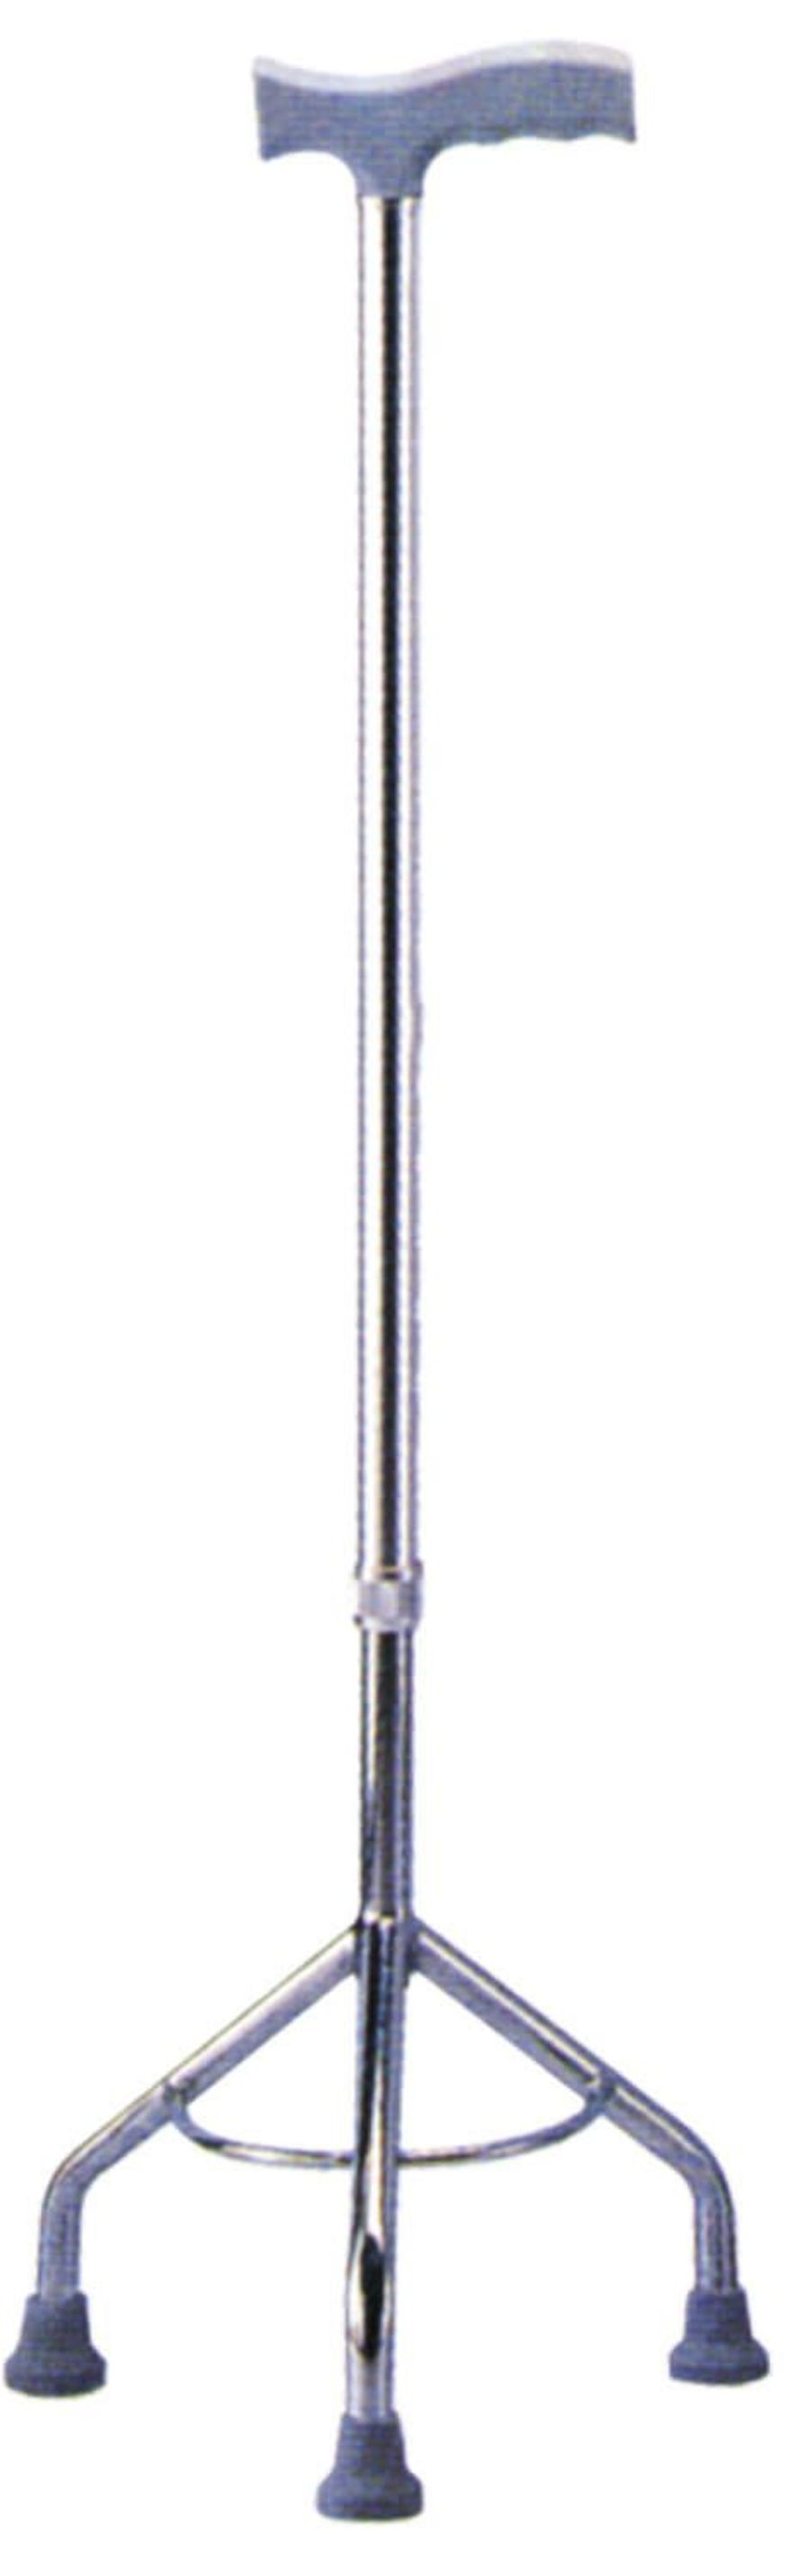 Quadripod walking stick / T handle / height-adjustable BT730 Better Medical Technology